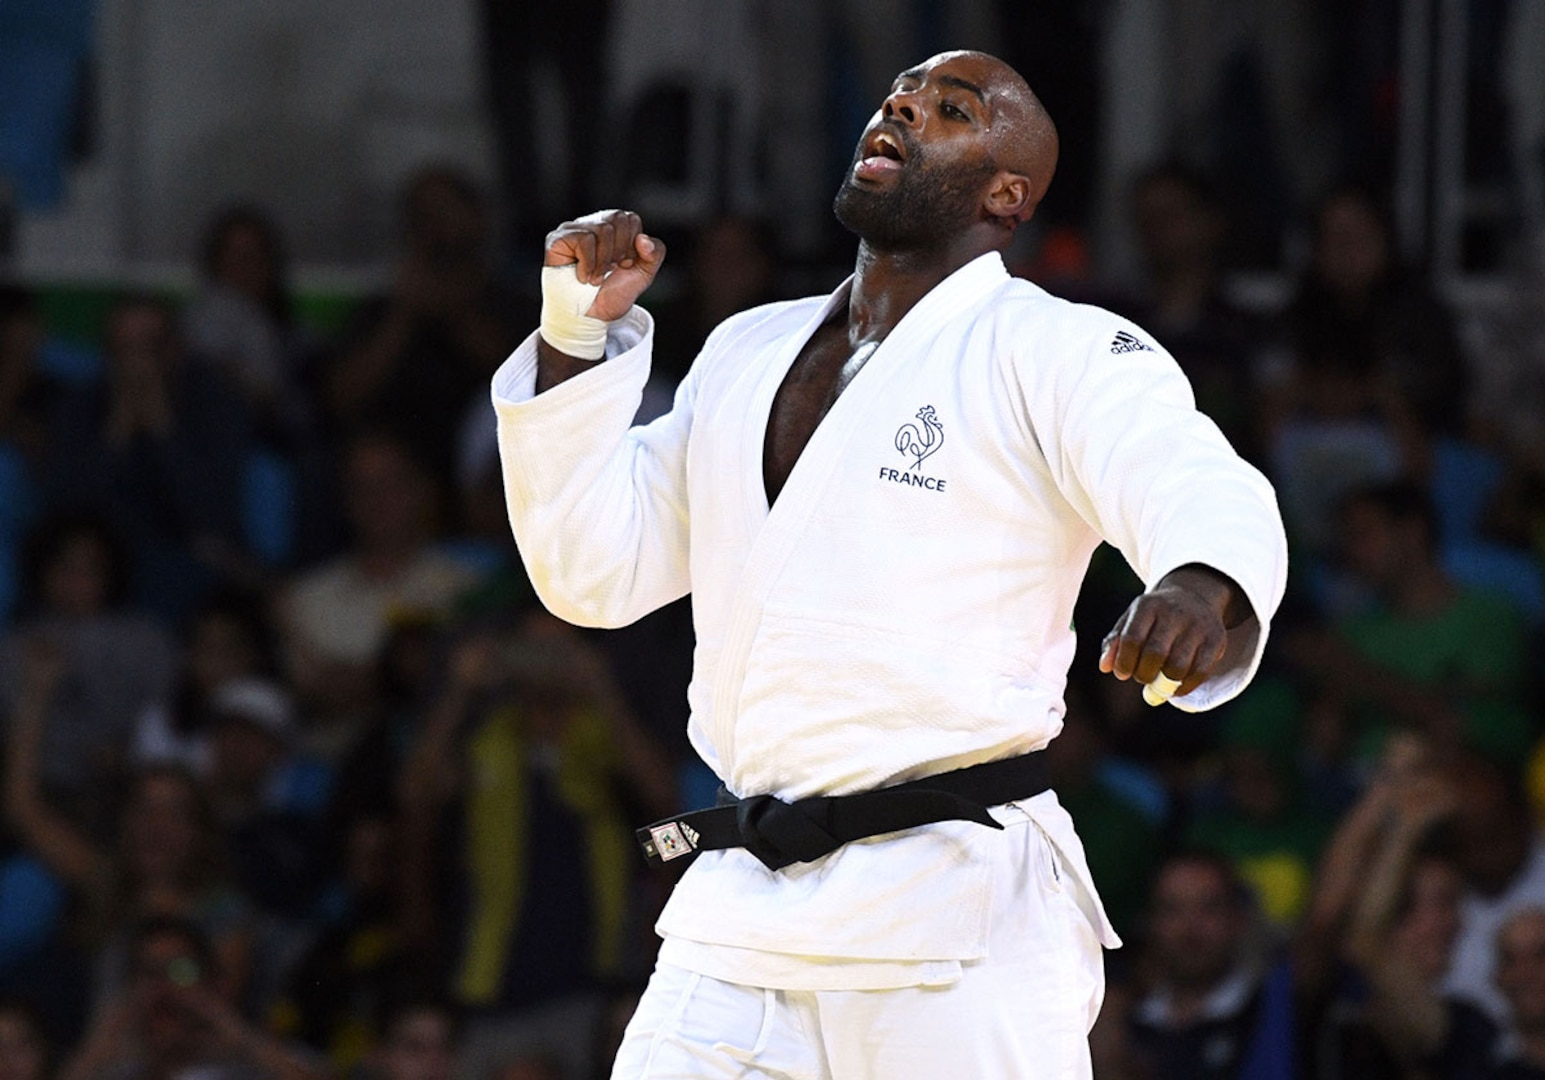 Teddy Riner celebrates after winning gold at the 2016 Games